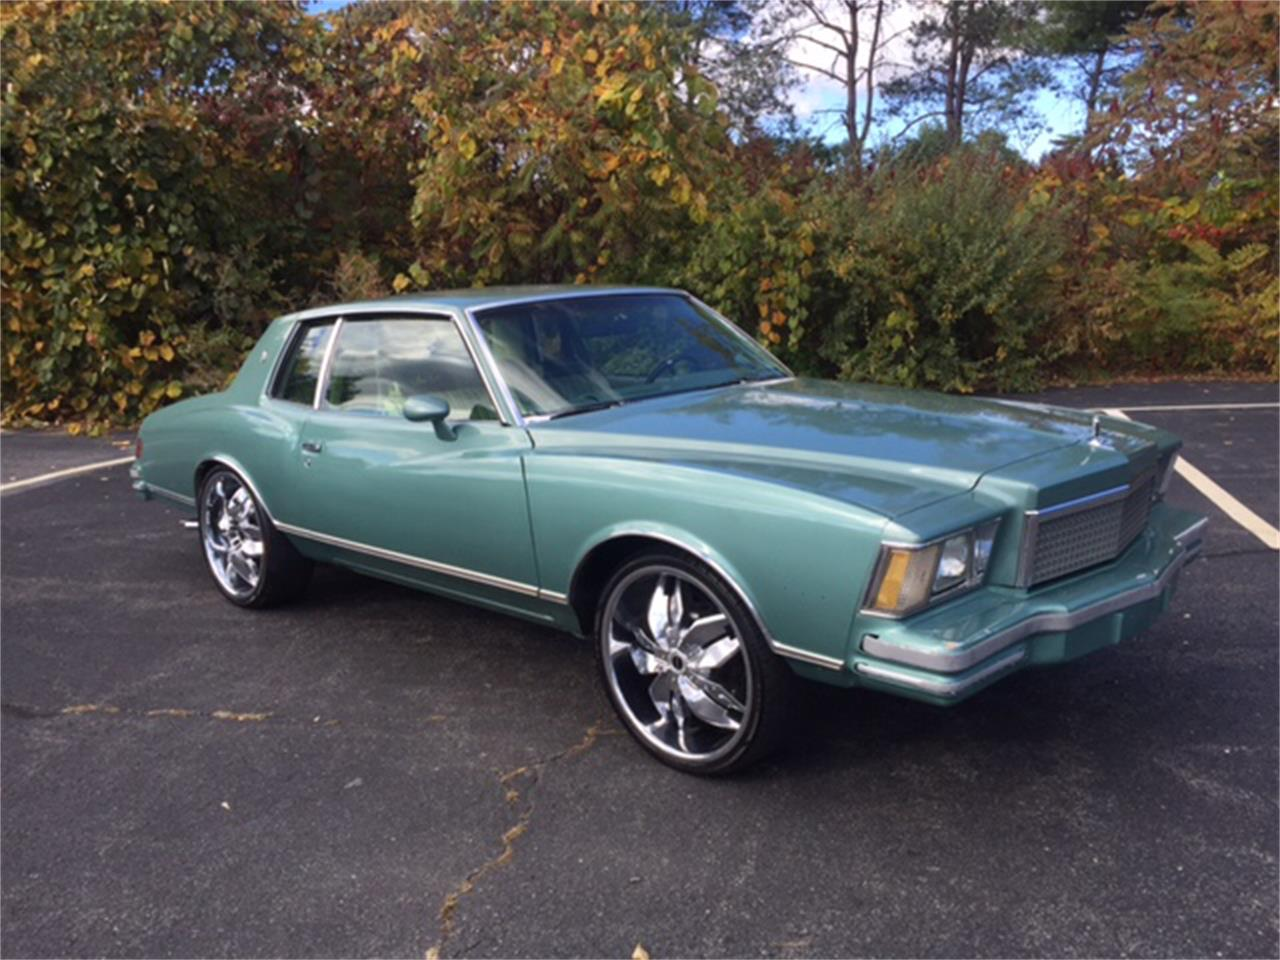 For Sale: 1978 Chevrolet Monte Carlo in Westford, Massachusetts